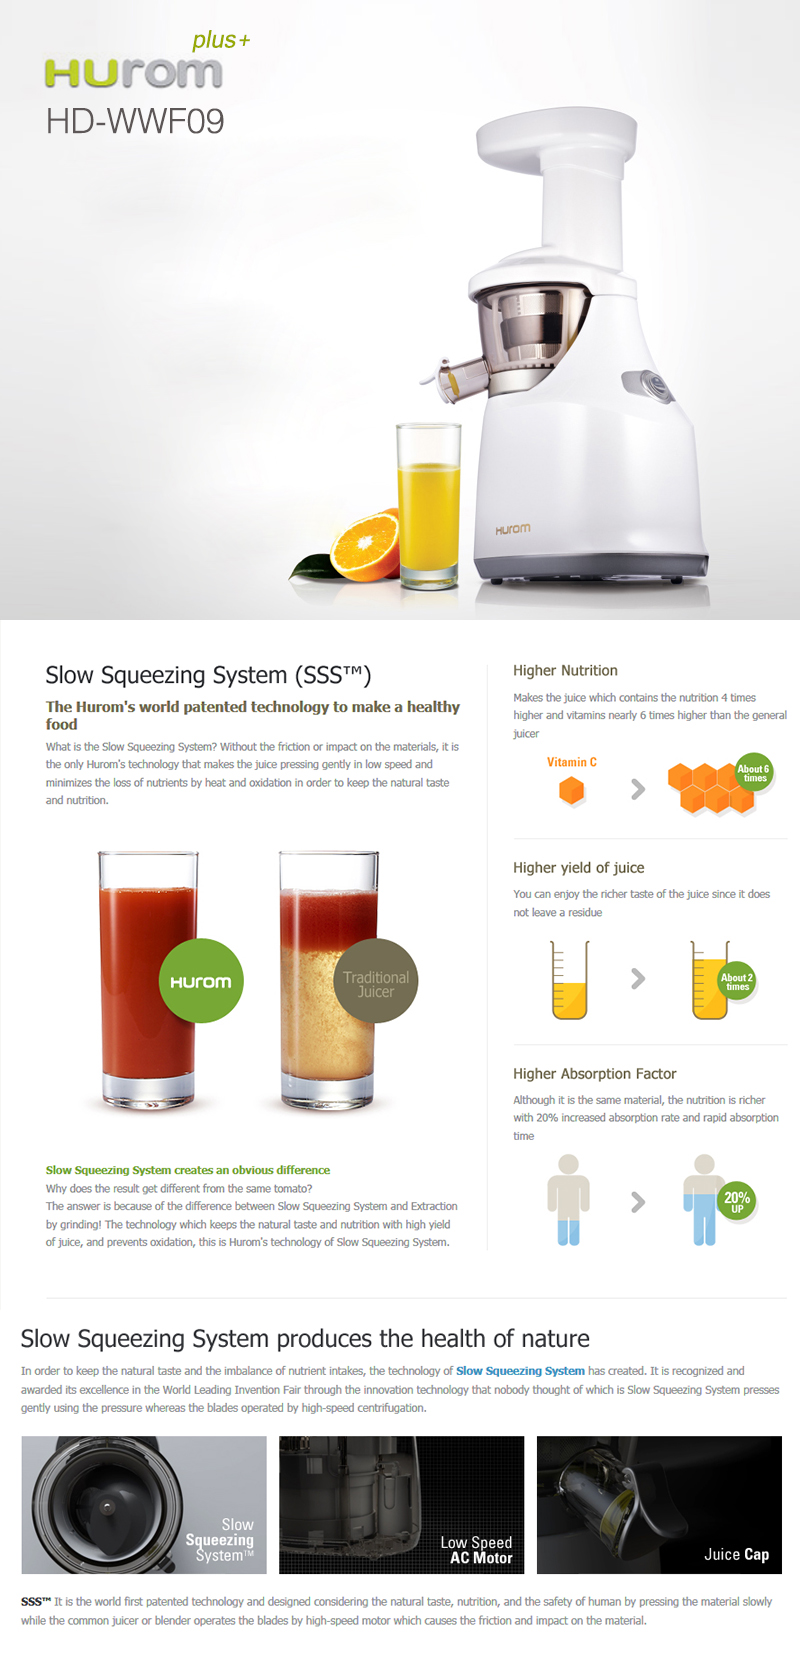 The Best Slow Juice Extractor : New HUROM HD-WWF09 Slow Juicer Extractor Fruit vegetable Citrus + Free Express eBay